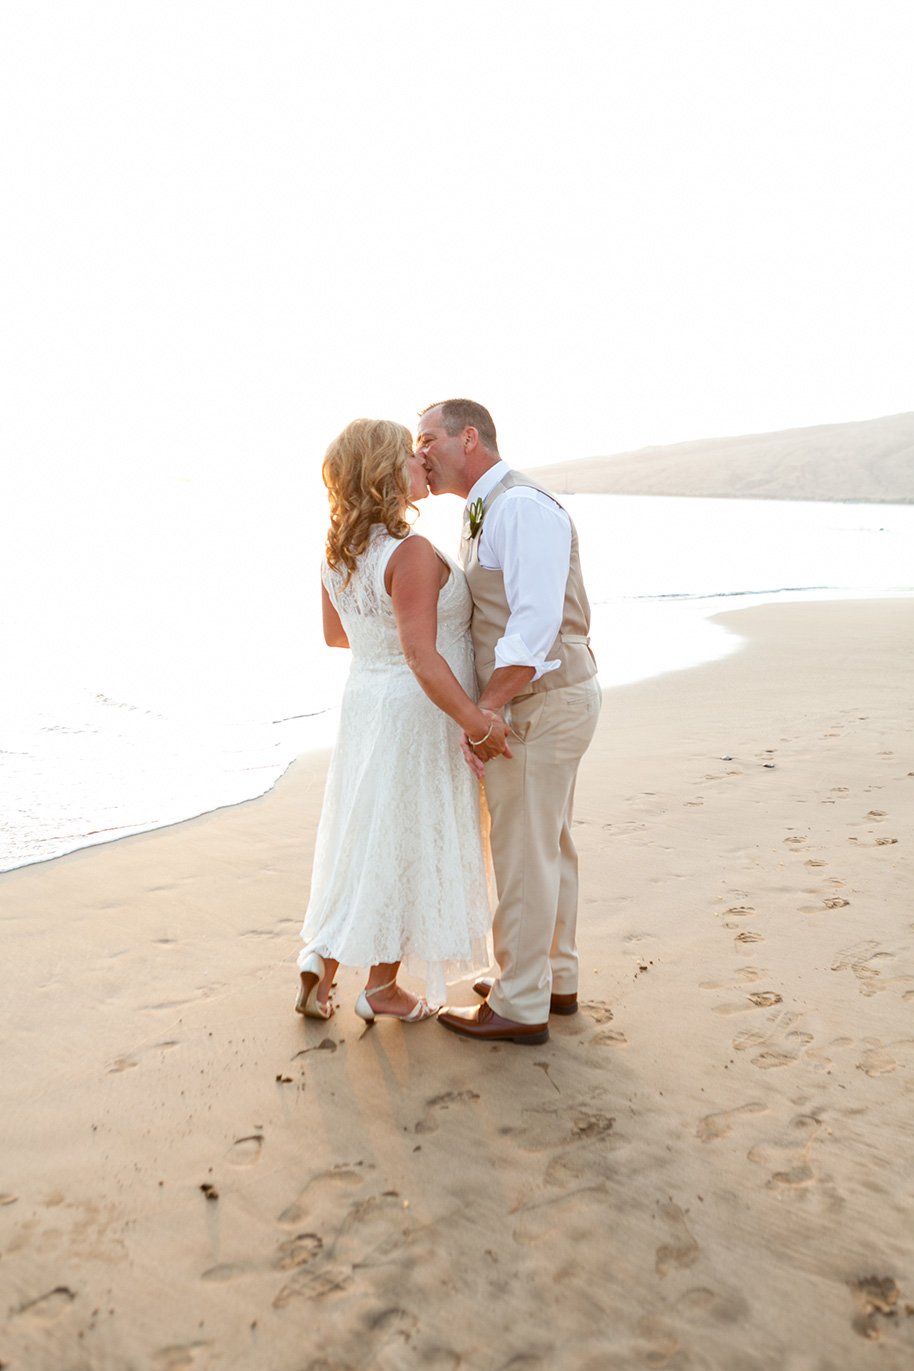 Maui-Beachside-Wedding-042916-26